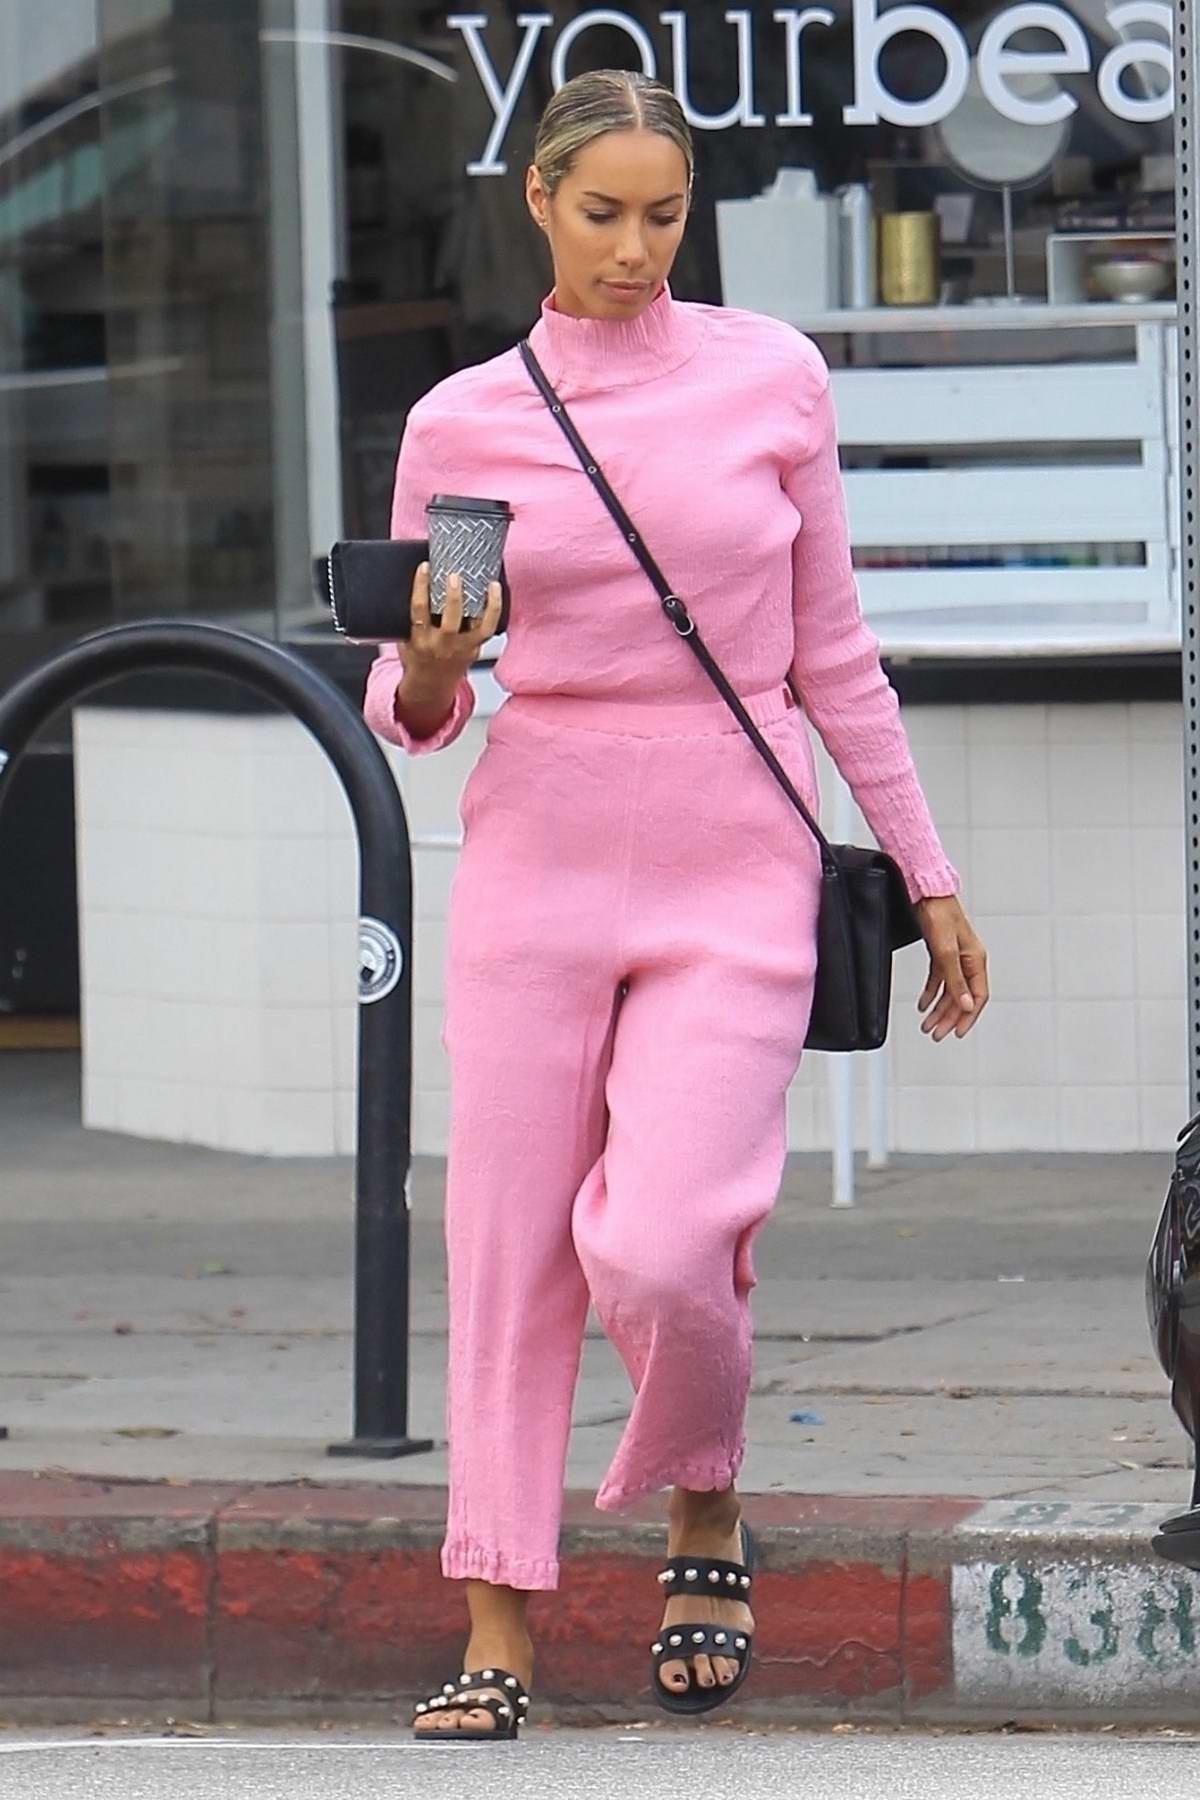 Leona Lewis leaves a detox market decked out in a light pink ensemble, los angeles